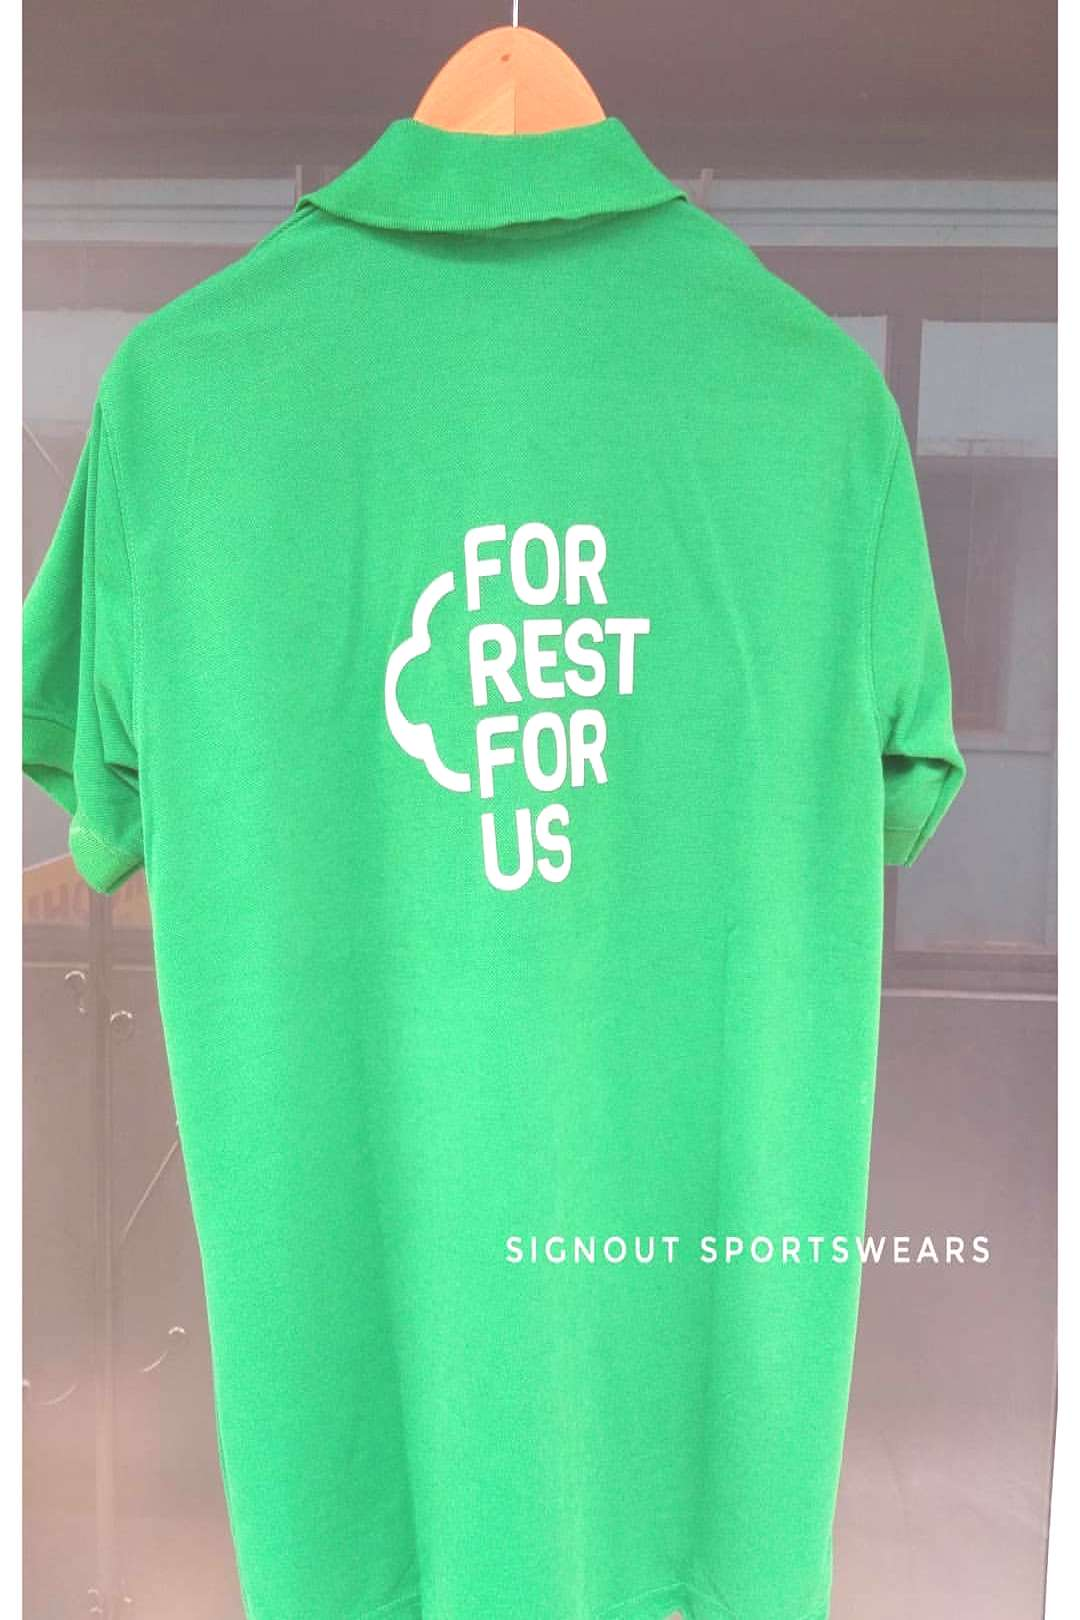 Signout Sportswear on June 09 2020 text that says FOR REST FOR US